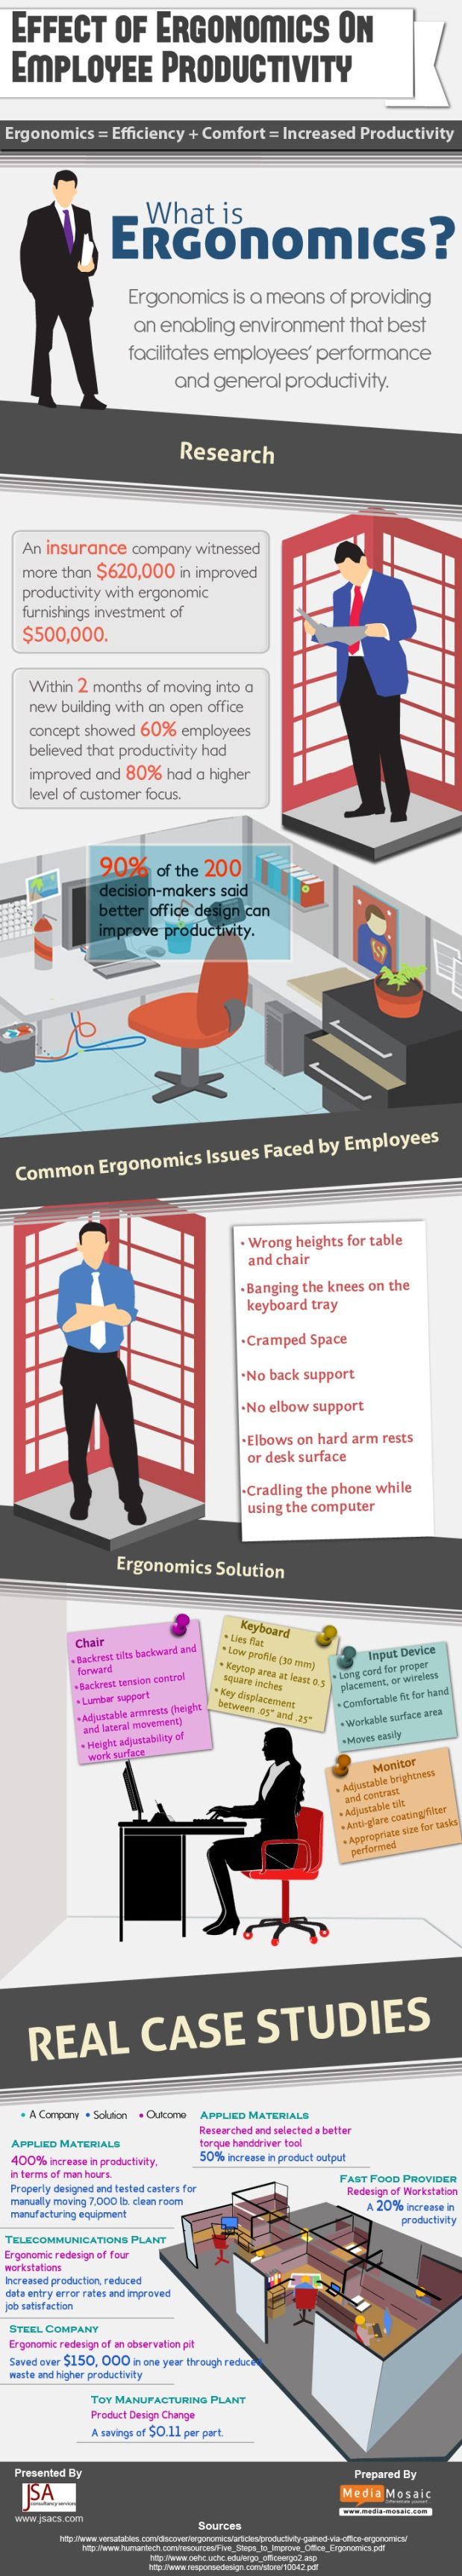 effect-of-ergonomics-on-employee-productivity-infographic_525e3c909c0e4